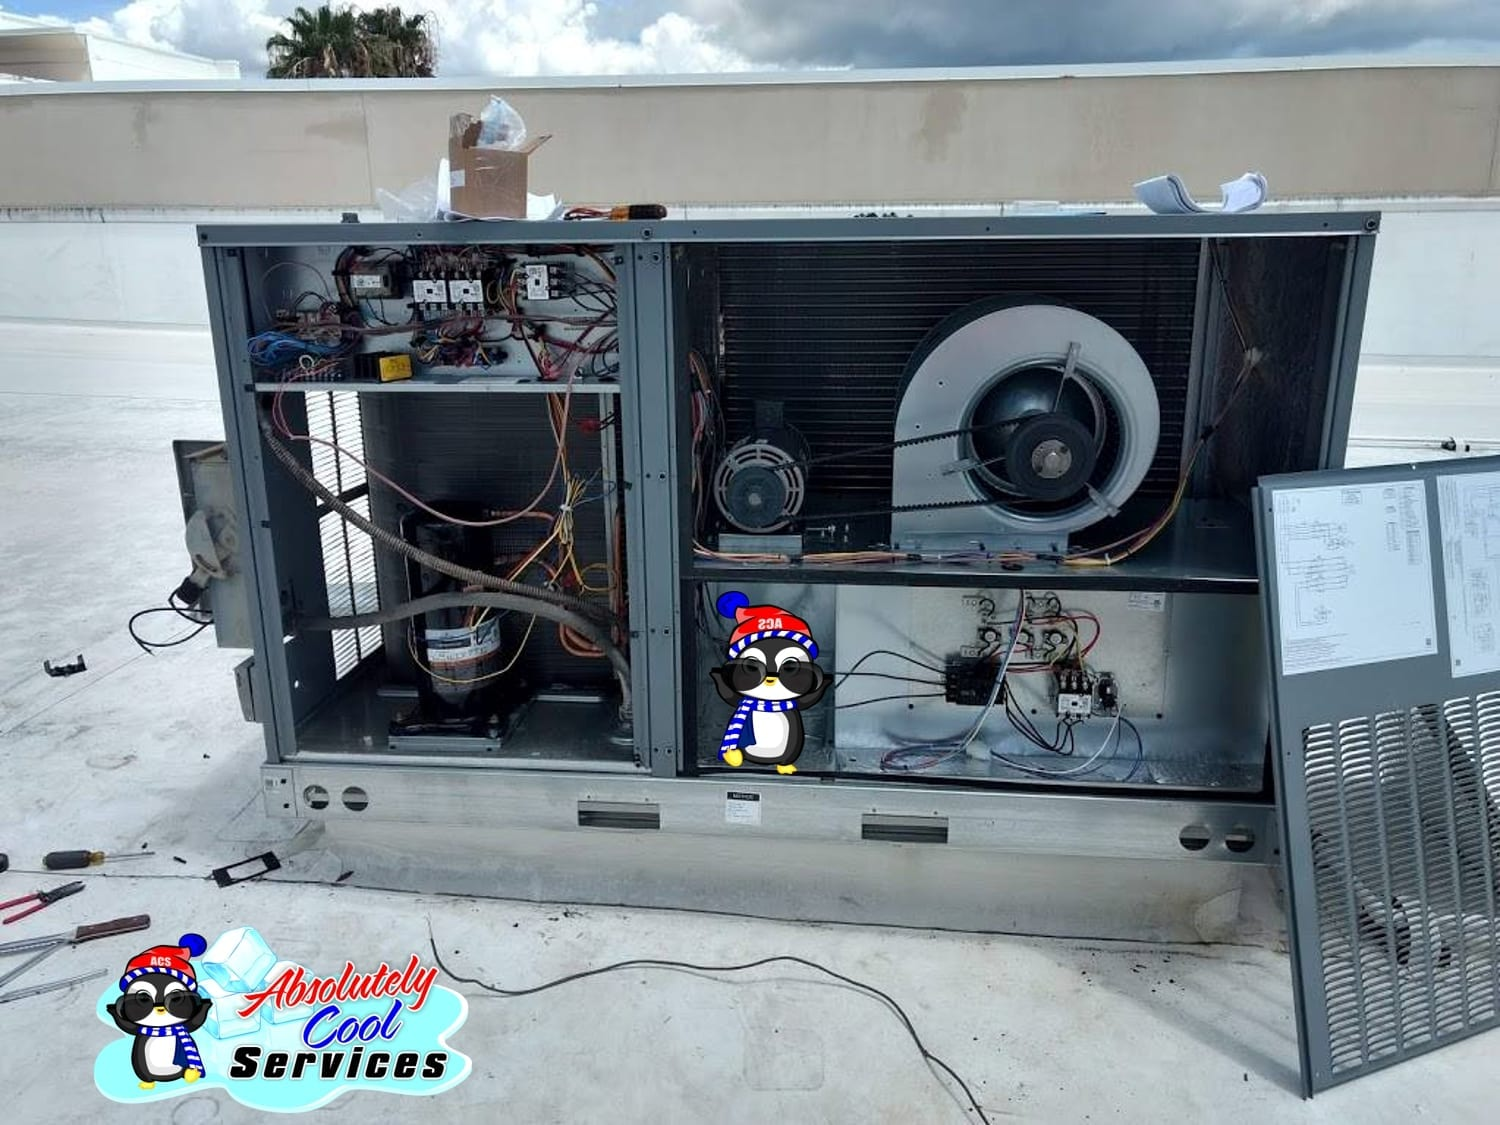 Roof Air Conditioning | Air Conditioning Repair Company near Loxahatchee